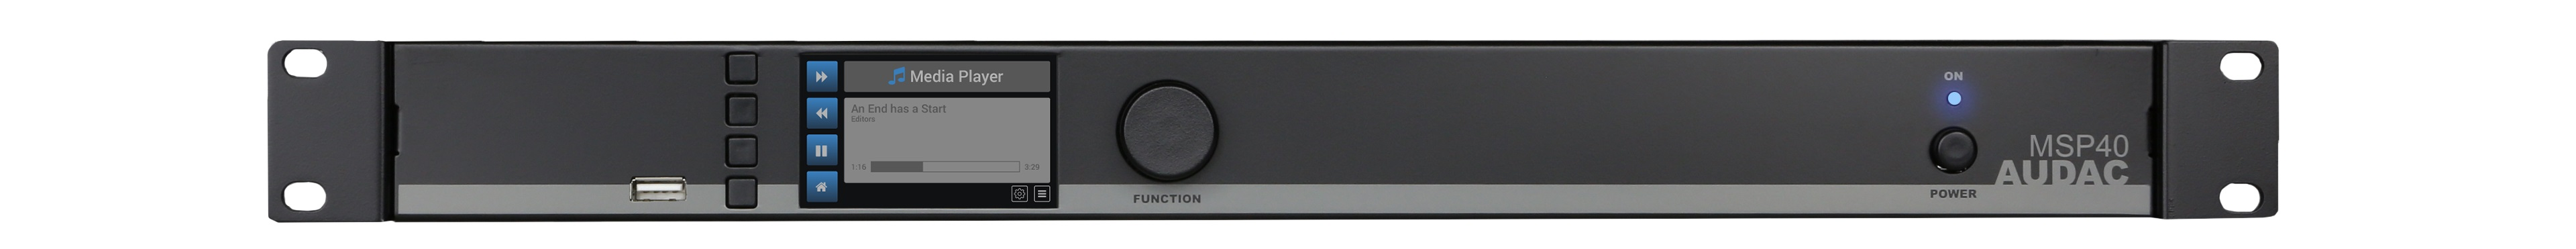 Audac media player og recorder